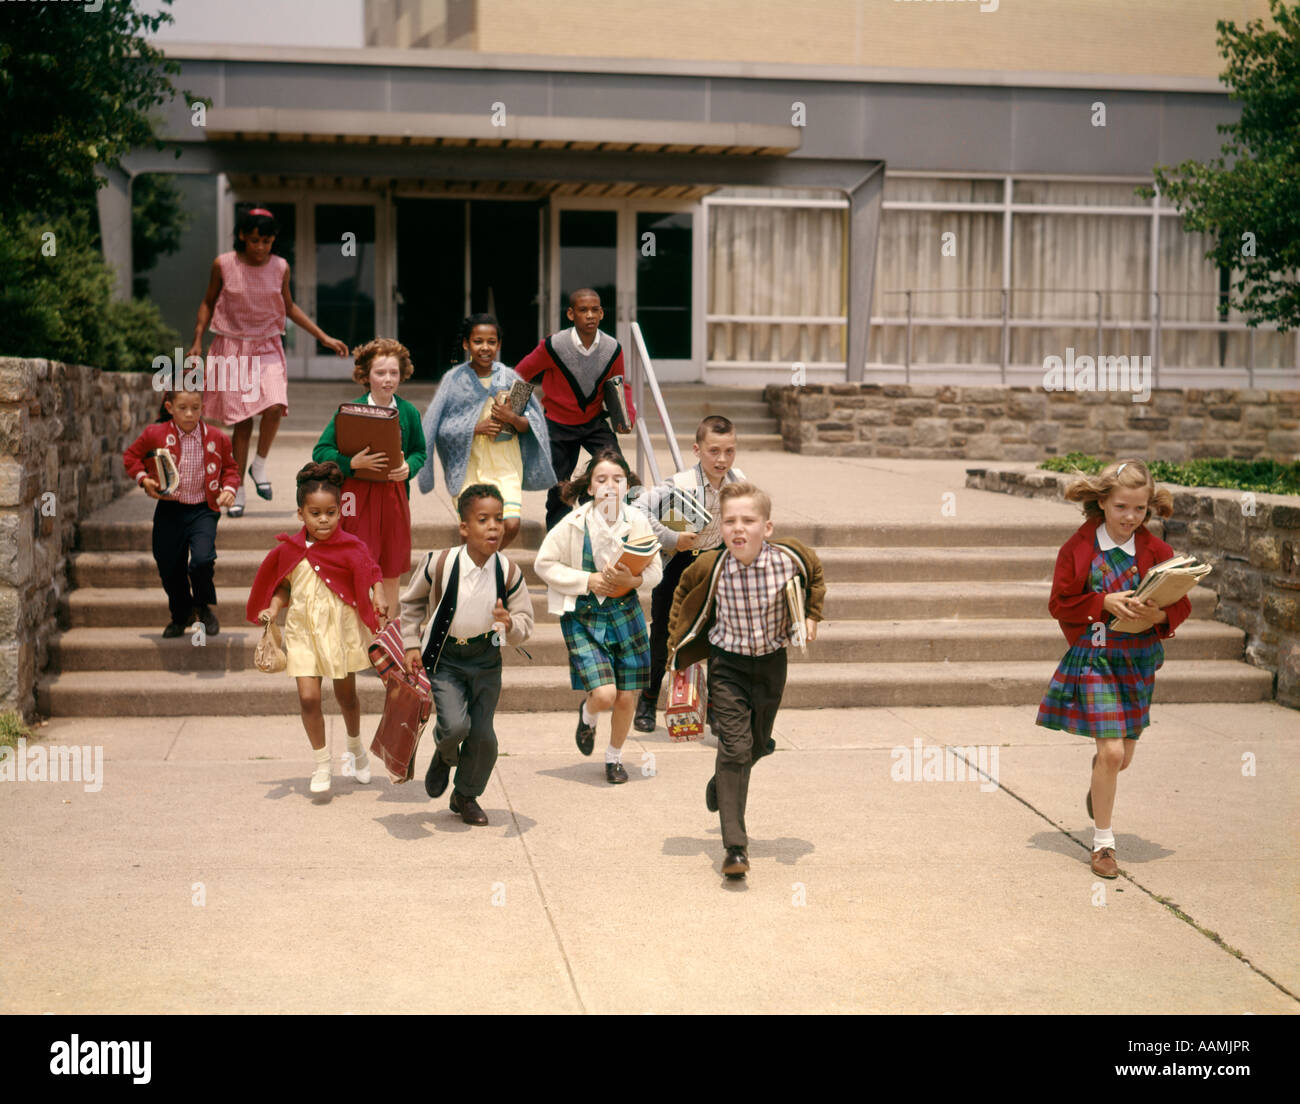 children running in school - photo #13